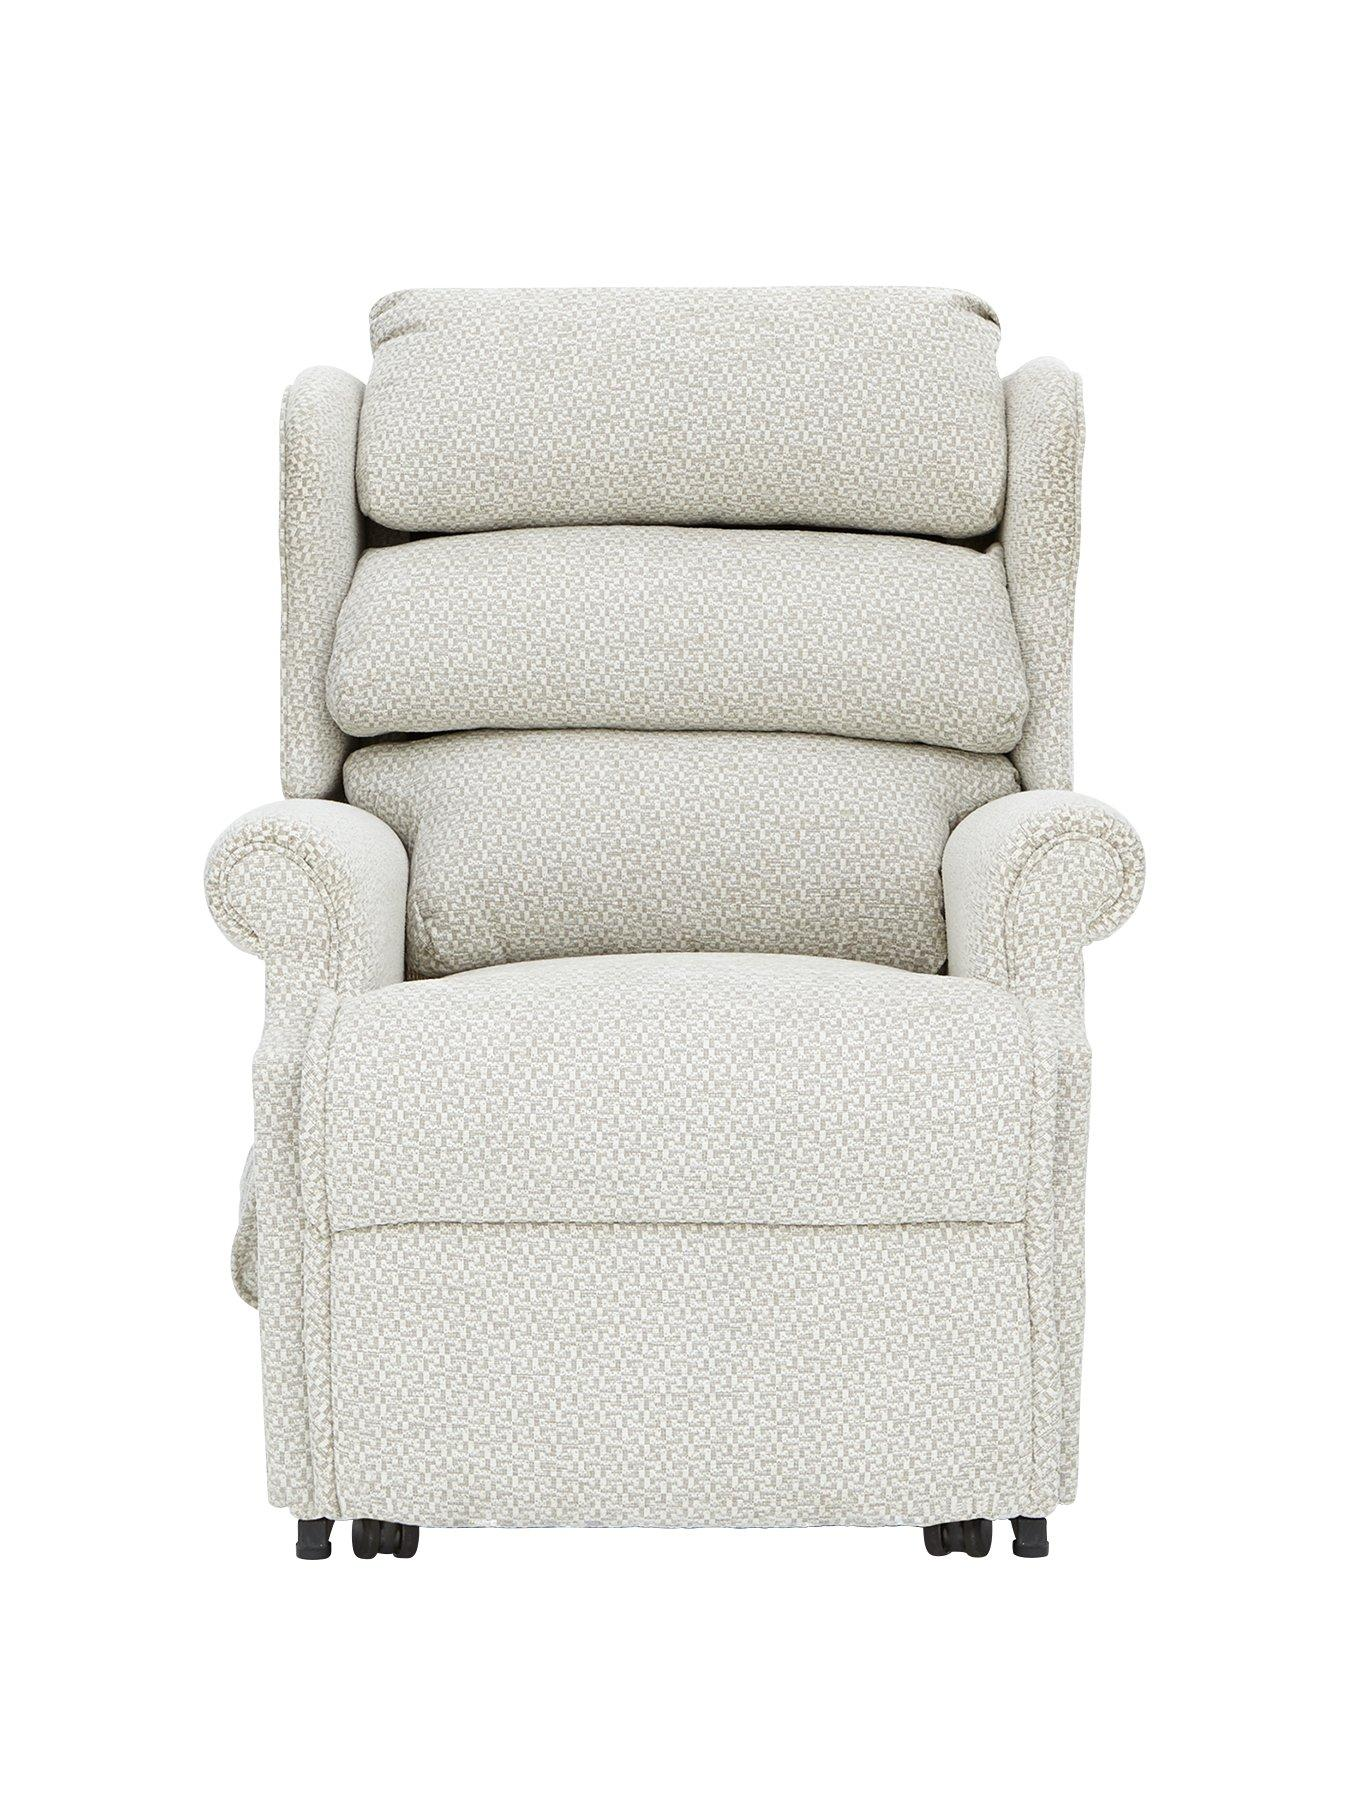 Home And Furniture Sale | Recliner | Armchairs | Chairs